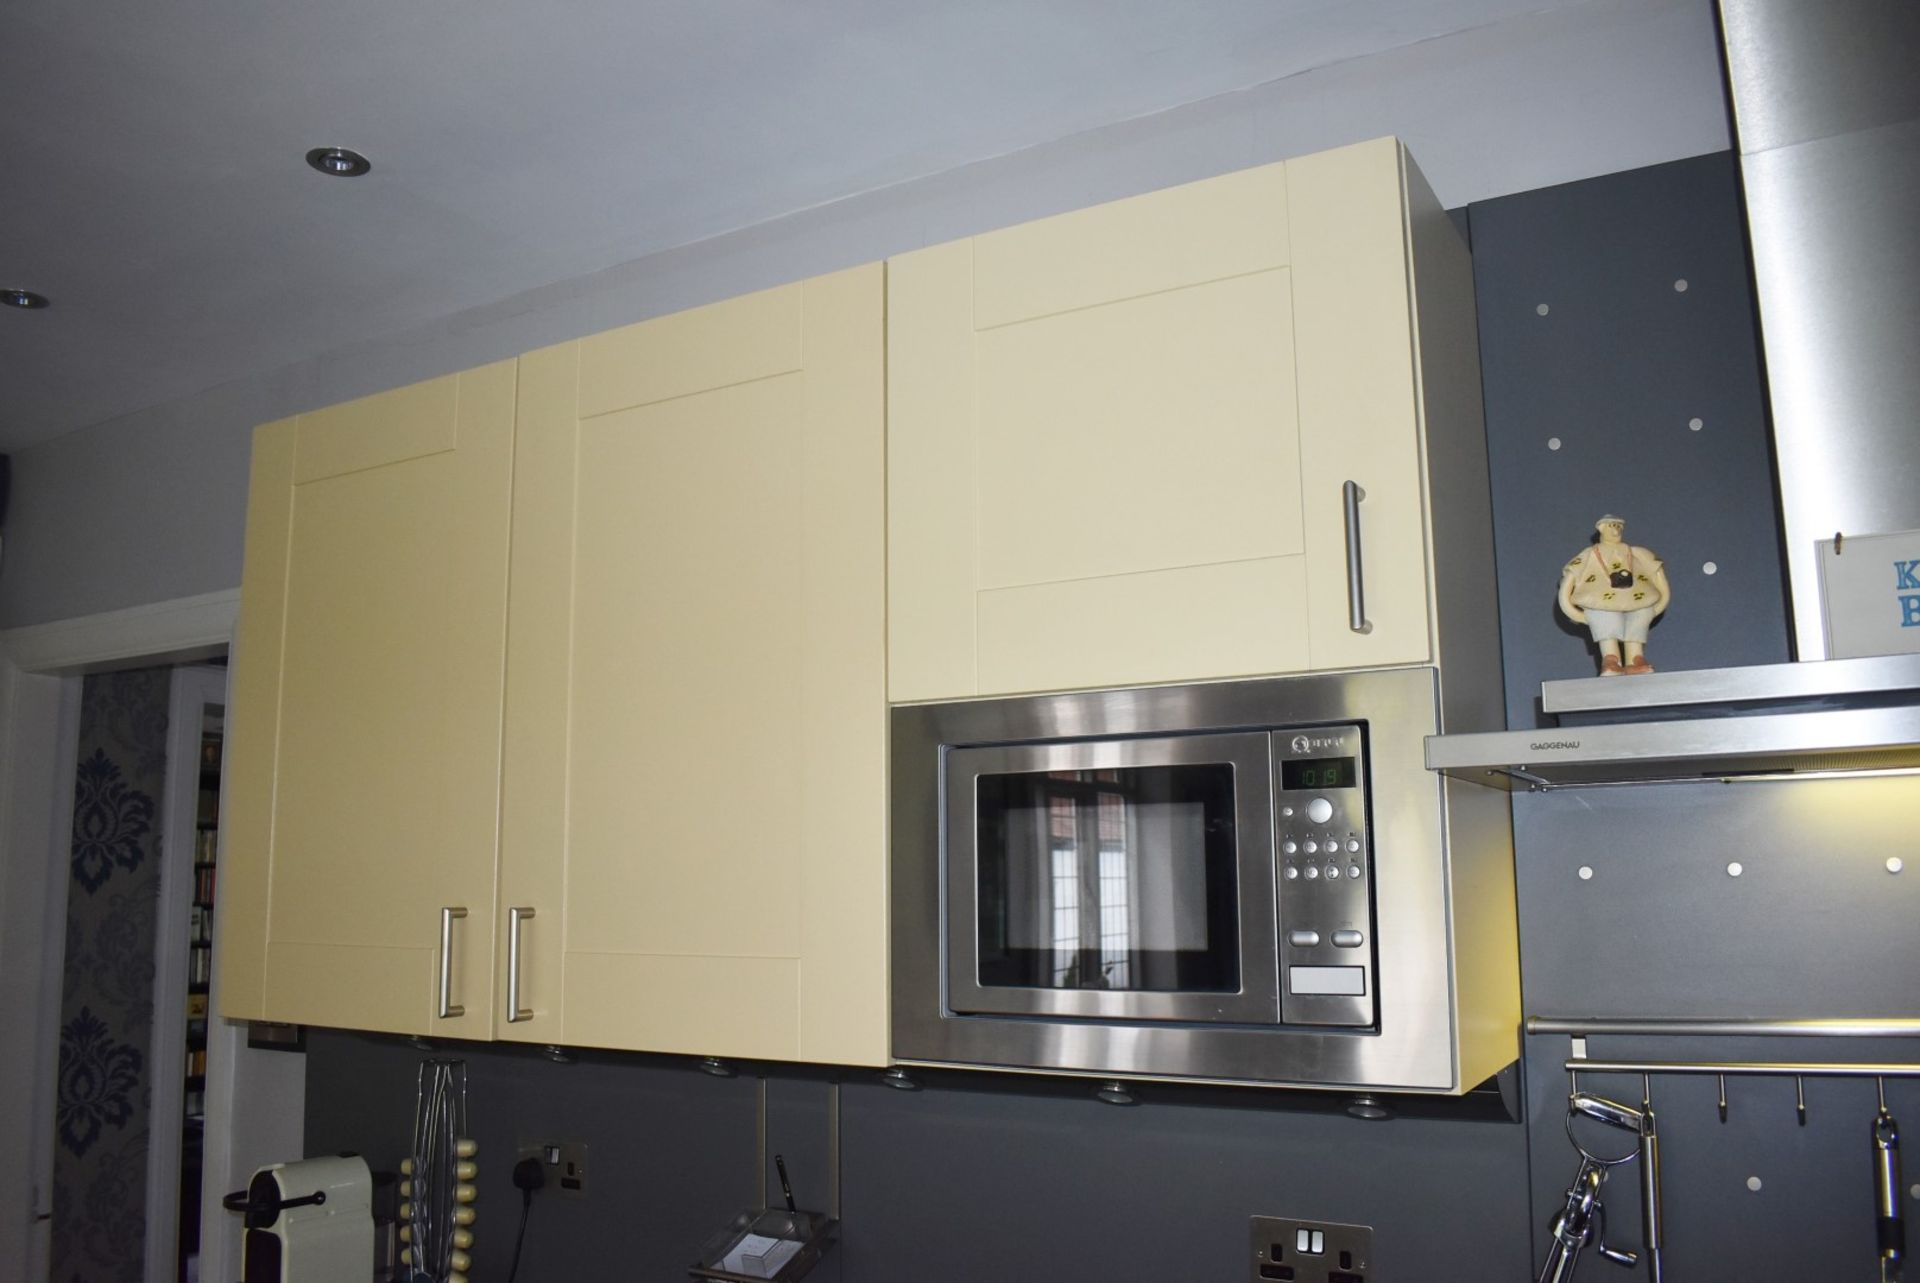 1 x SieMatic Contemporary Fitted Kitchen With Appliances - Features Shaker Style Doors, Central - Image 51 of 96